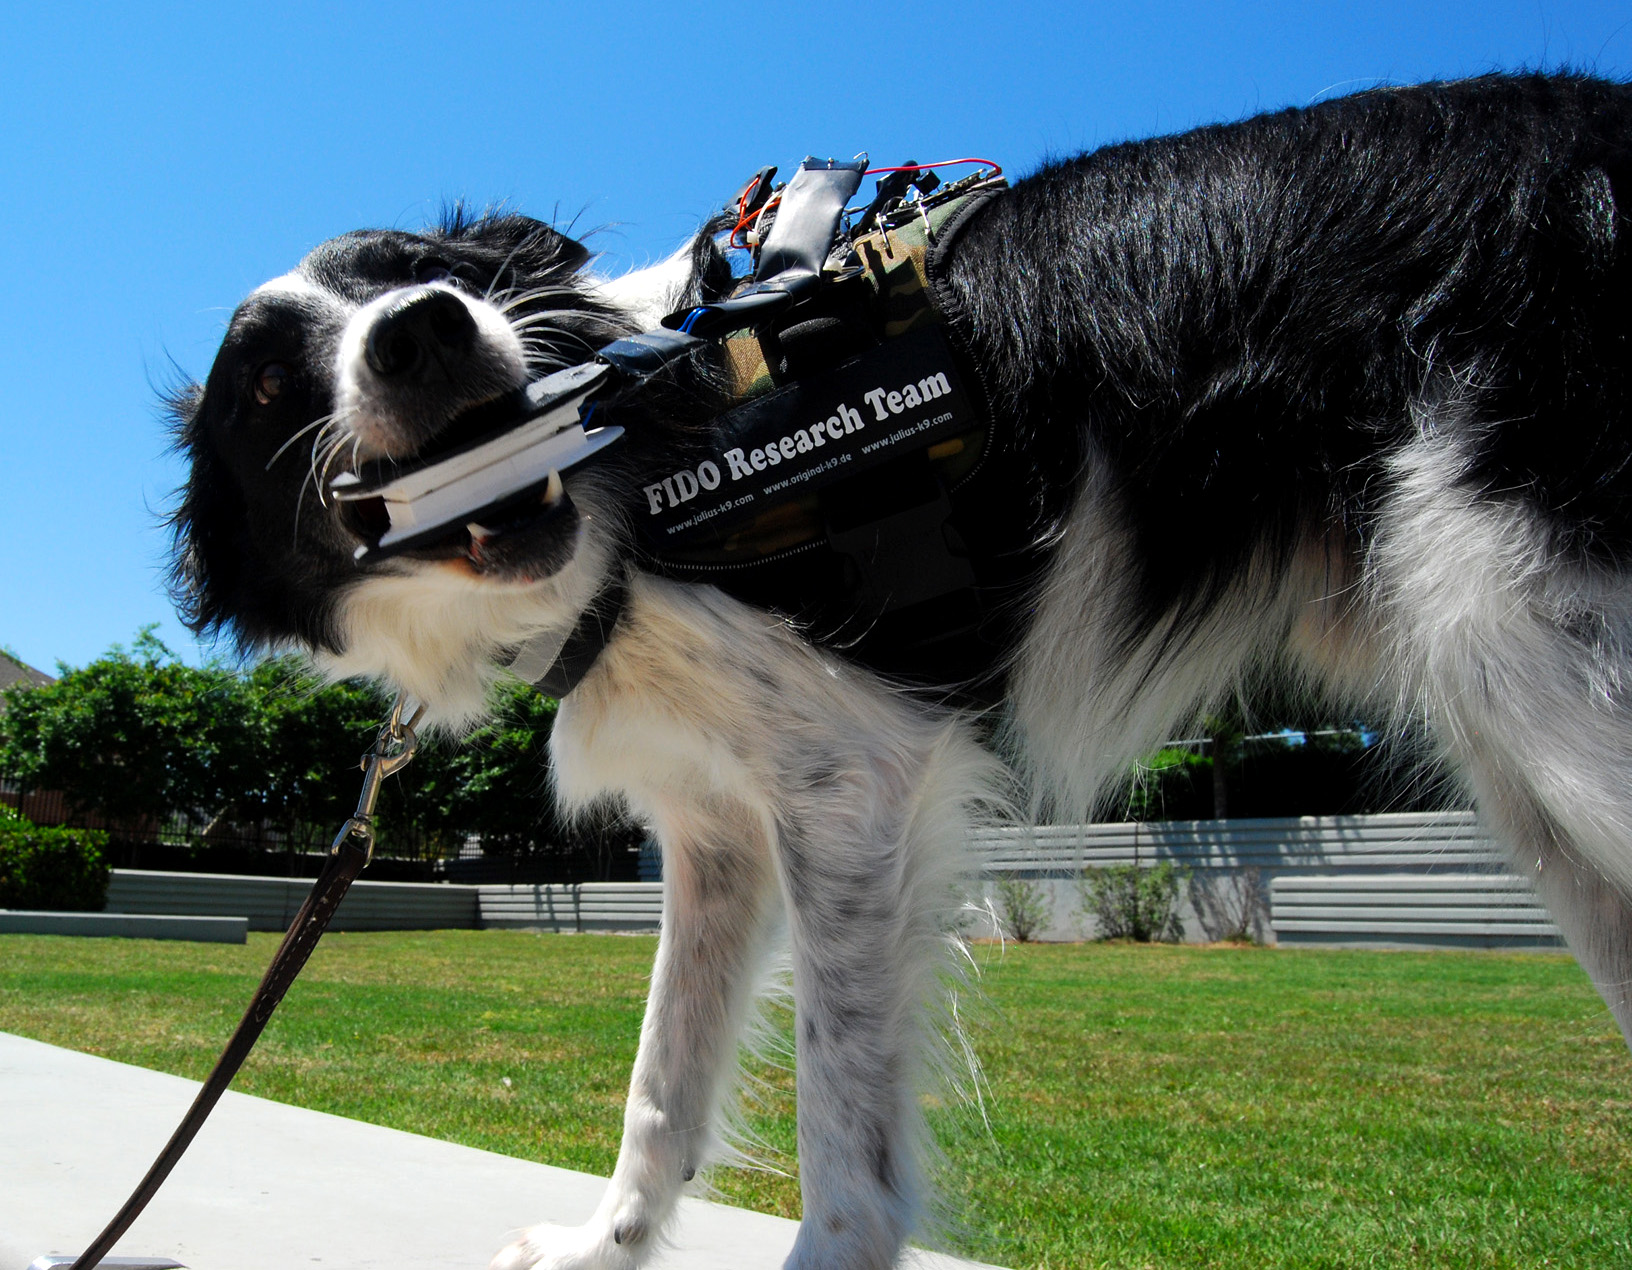 The Fido Project Wearable Technology For Service Dogs